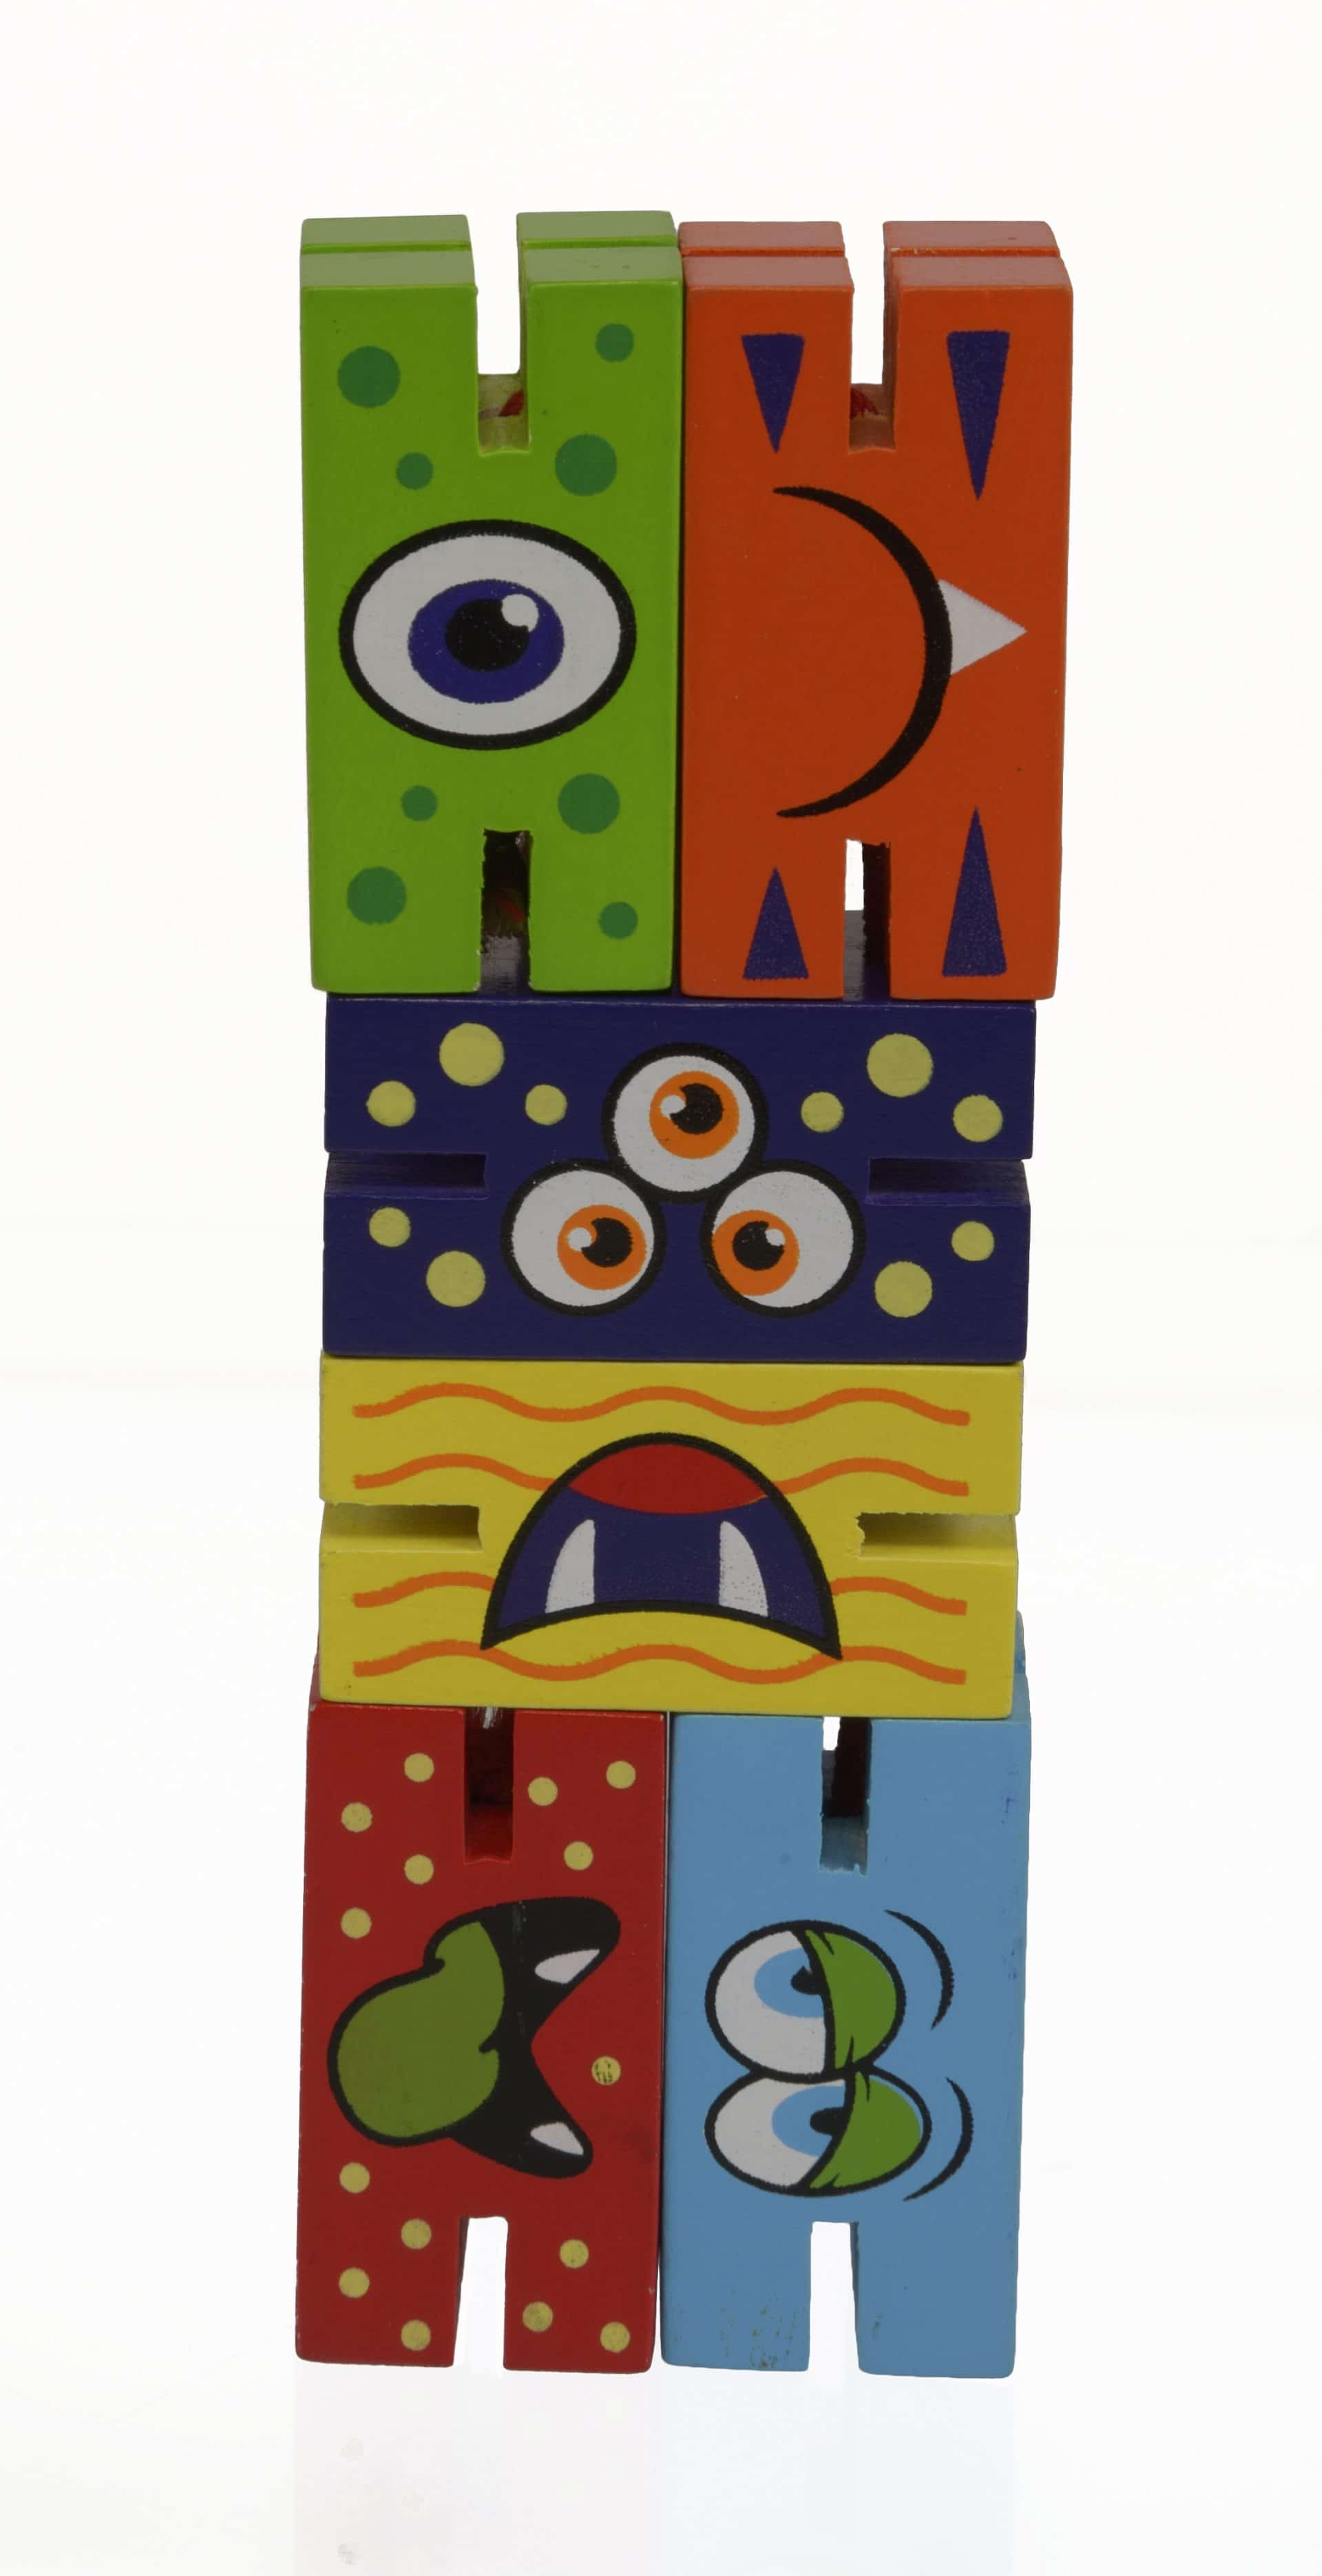 Connected, slotted wooden blocks make monster faces